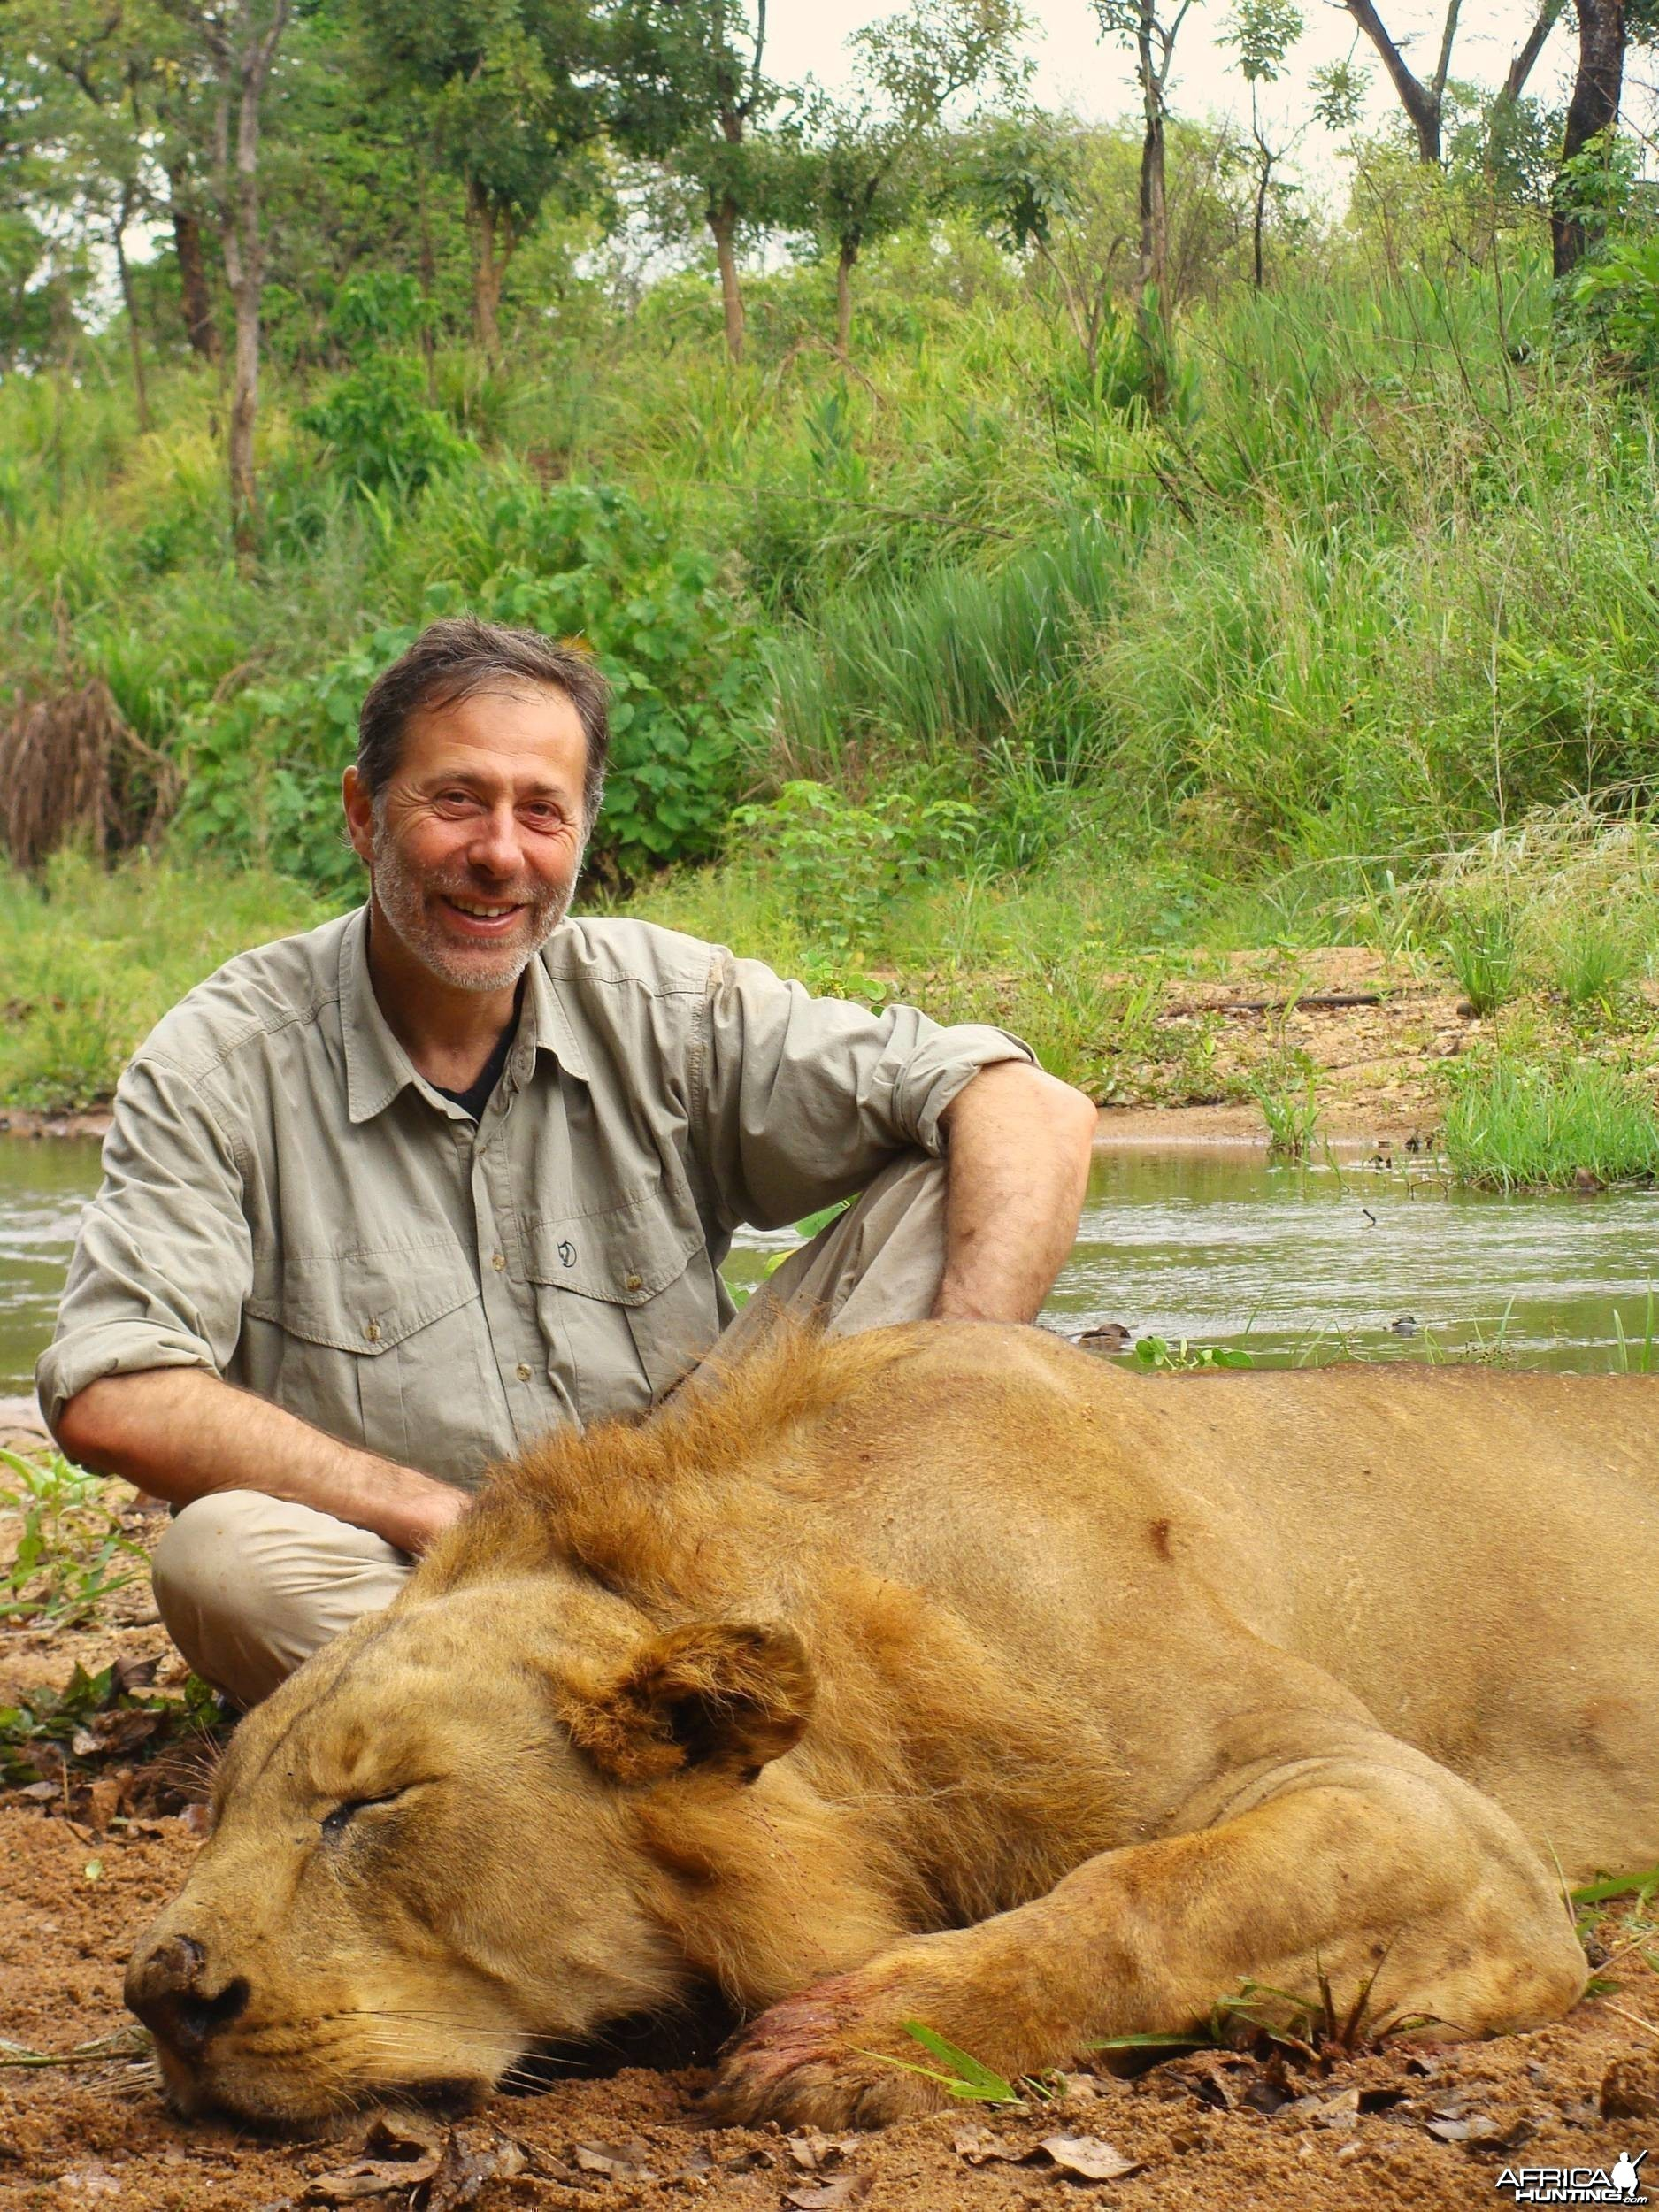 Hunting Lion by Call in Africa